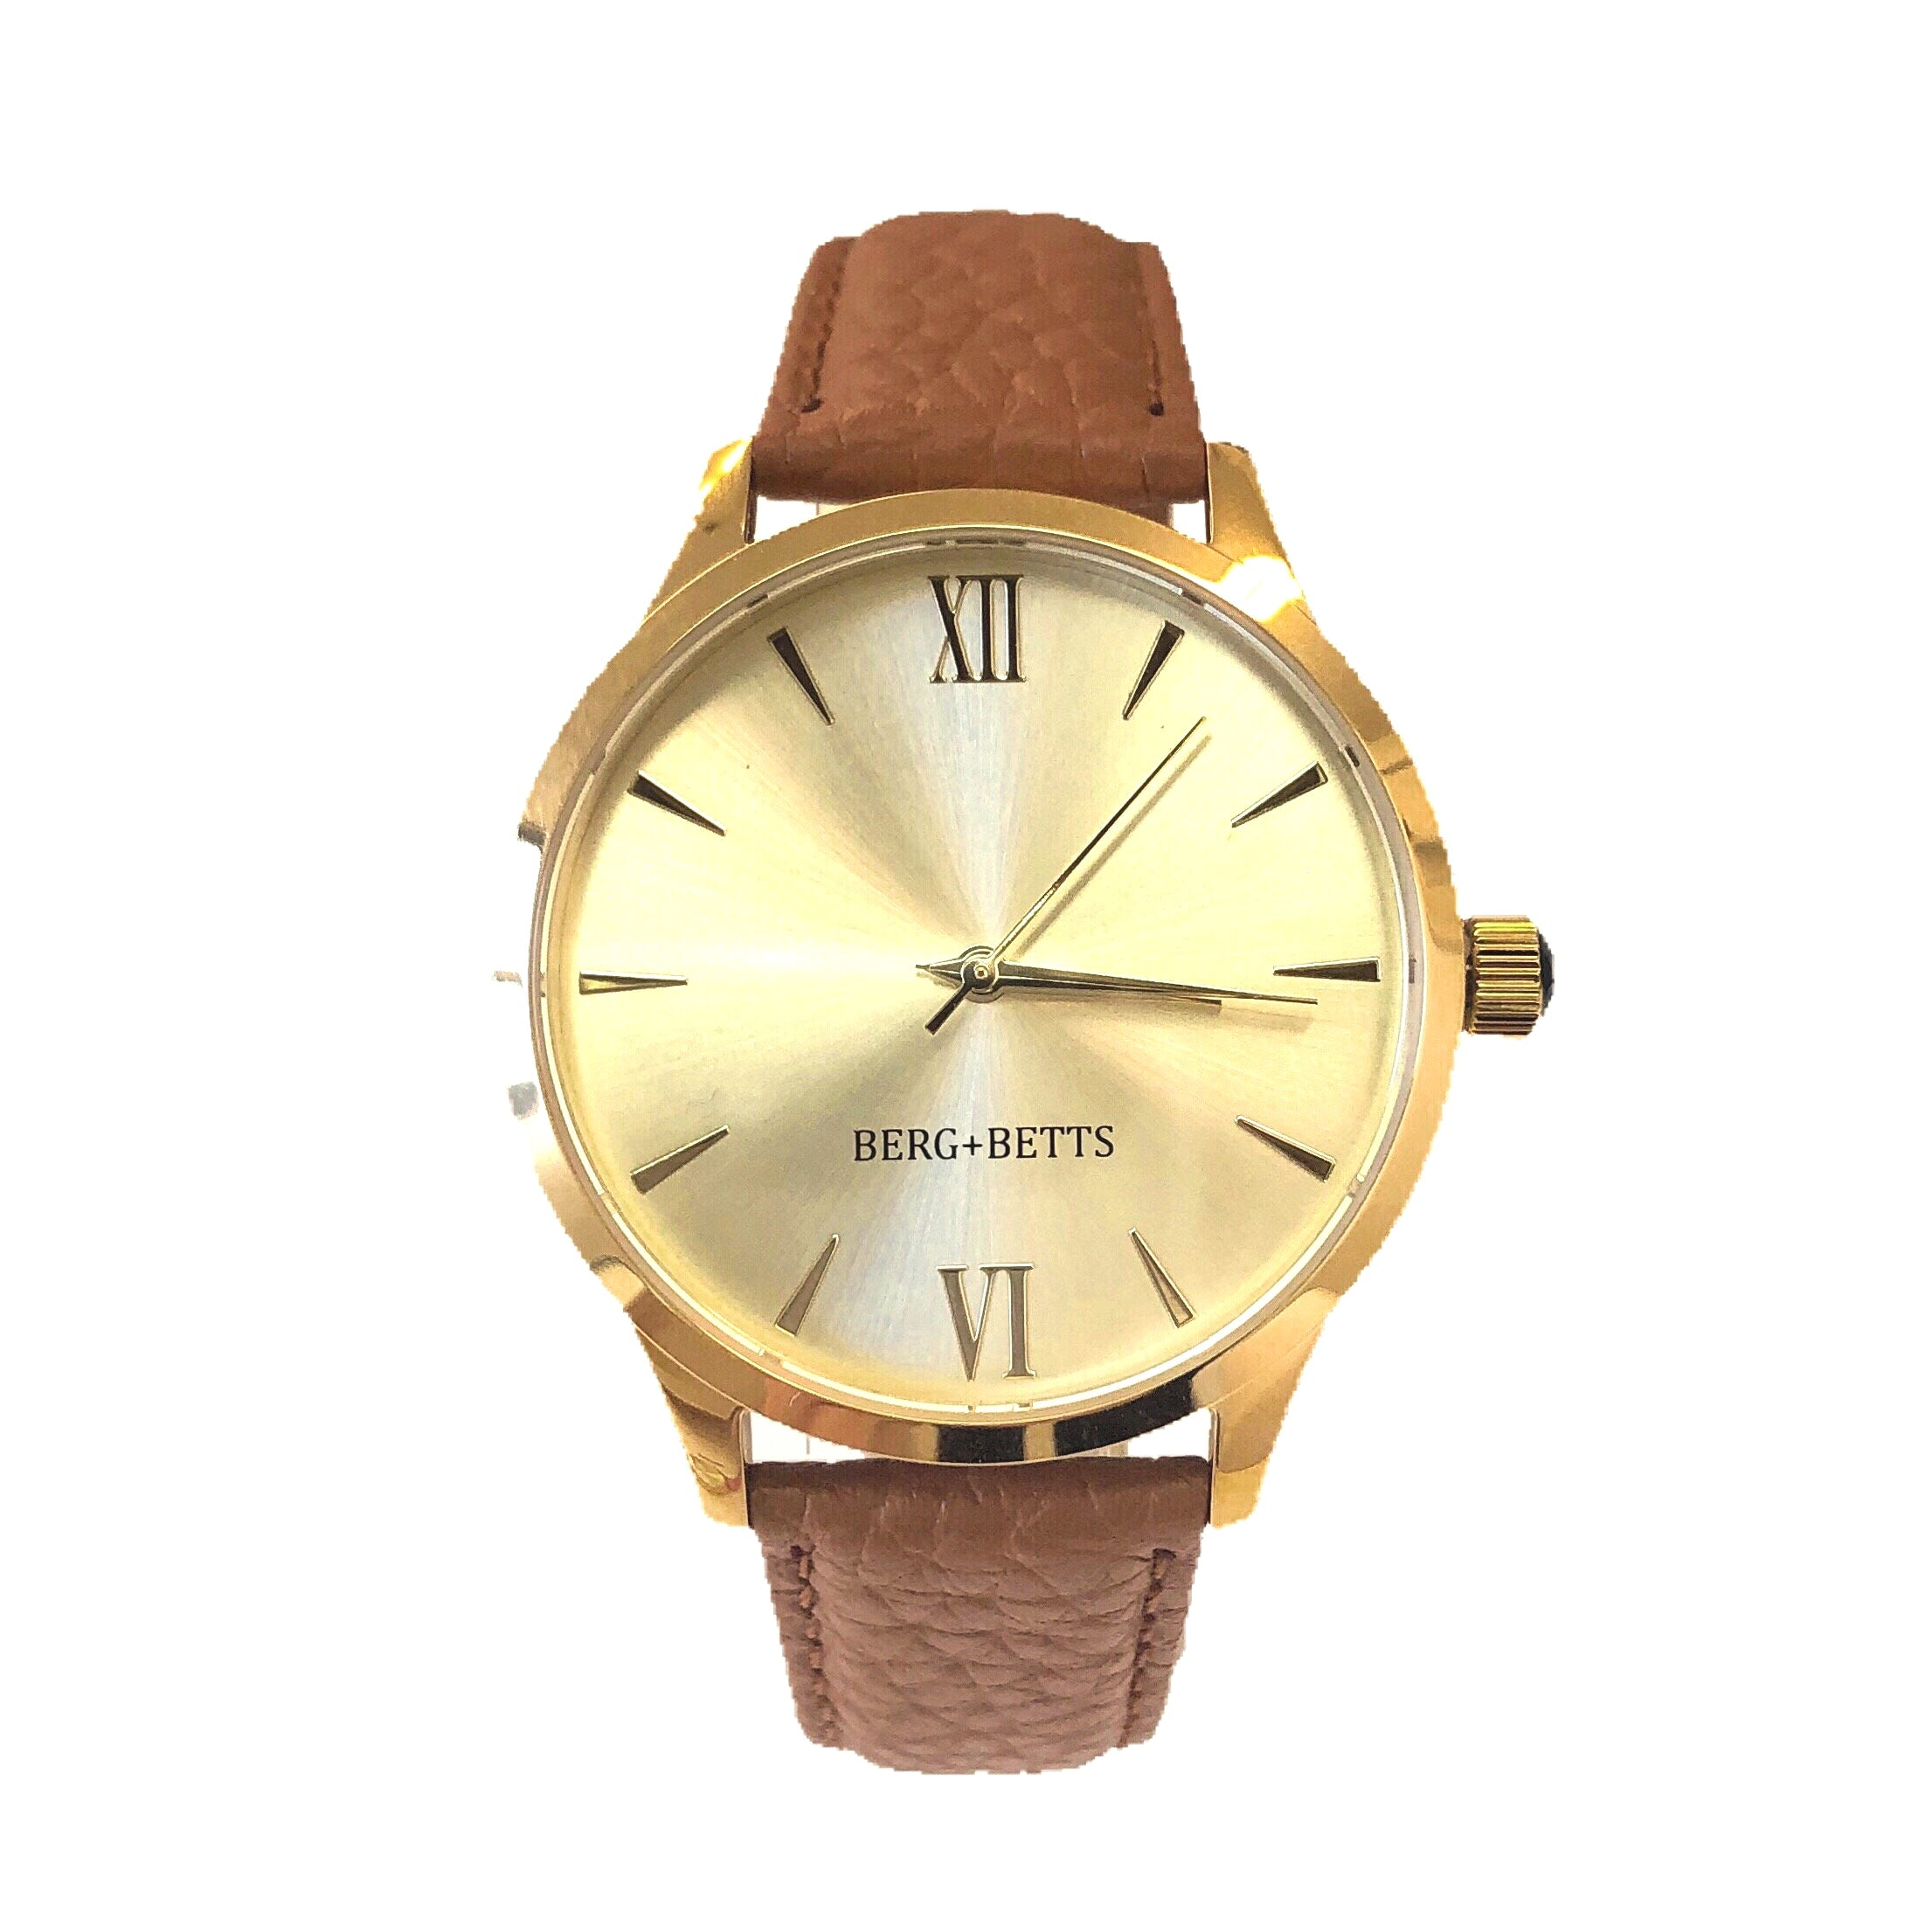 BERG+BETTS watch with mirrored gold face and leather sustainable strap